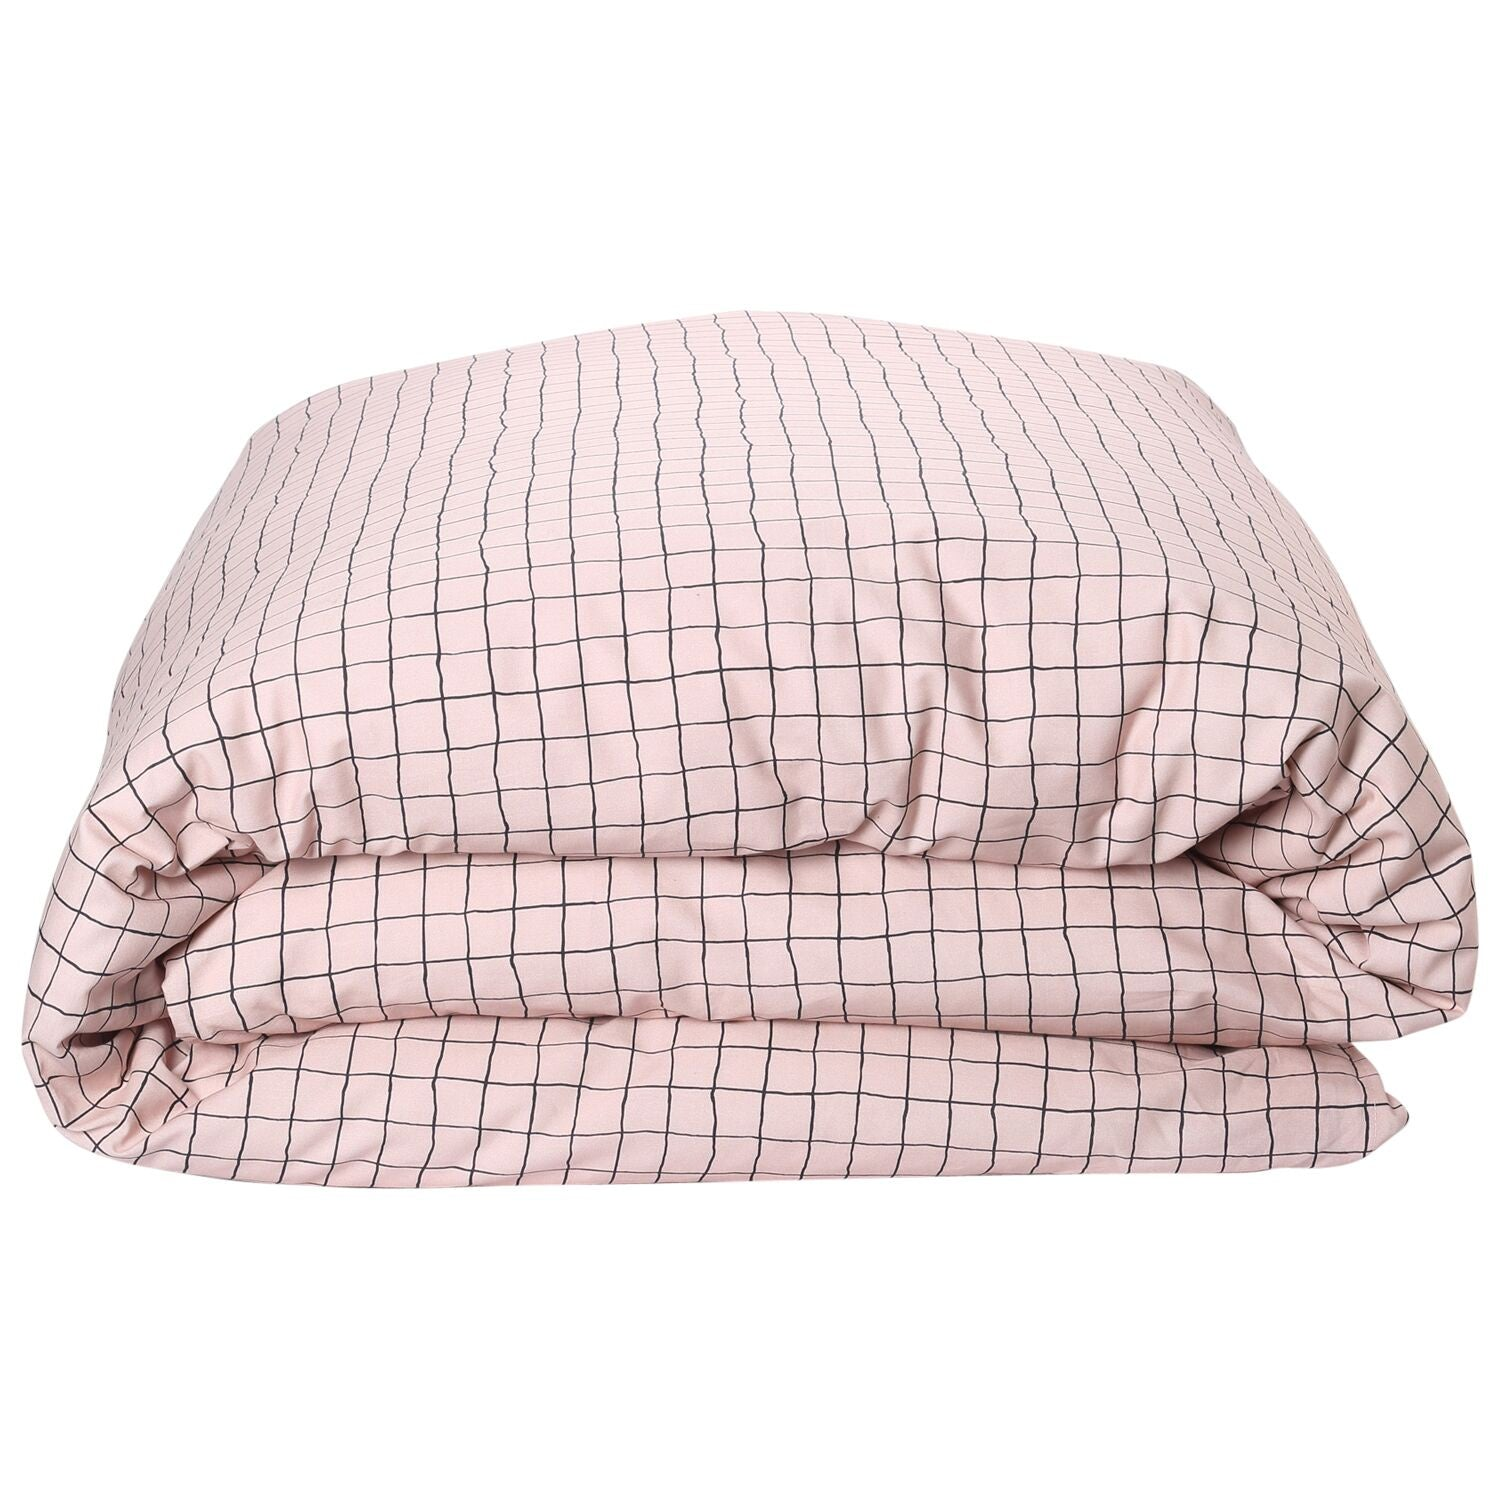 Kip & Co Check 1,2 Cotton Quilt Cover- Queen - The Artisan Storeroom